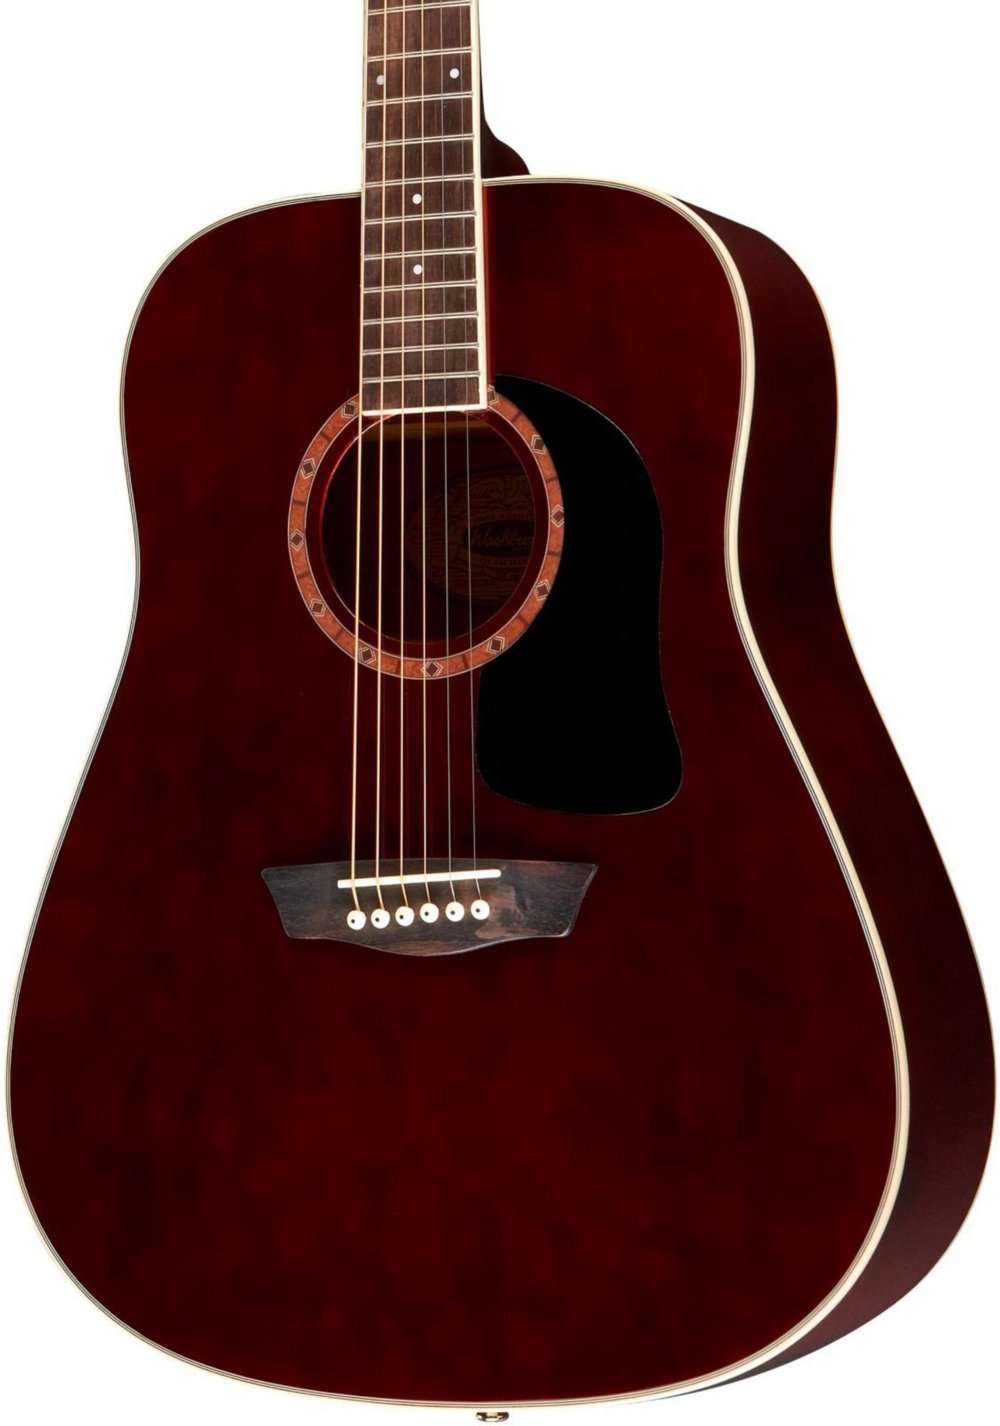 Washburn WD100DL Dreadnought Mahogany Acoustic Guitar Transparent Wine Red by Washburn